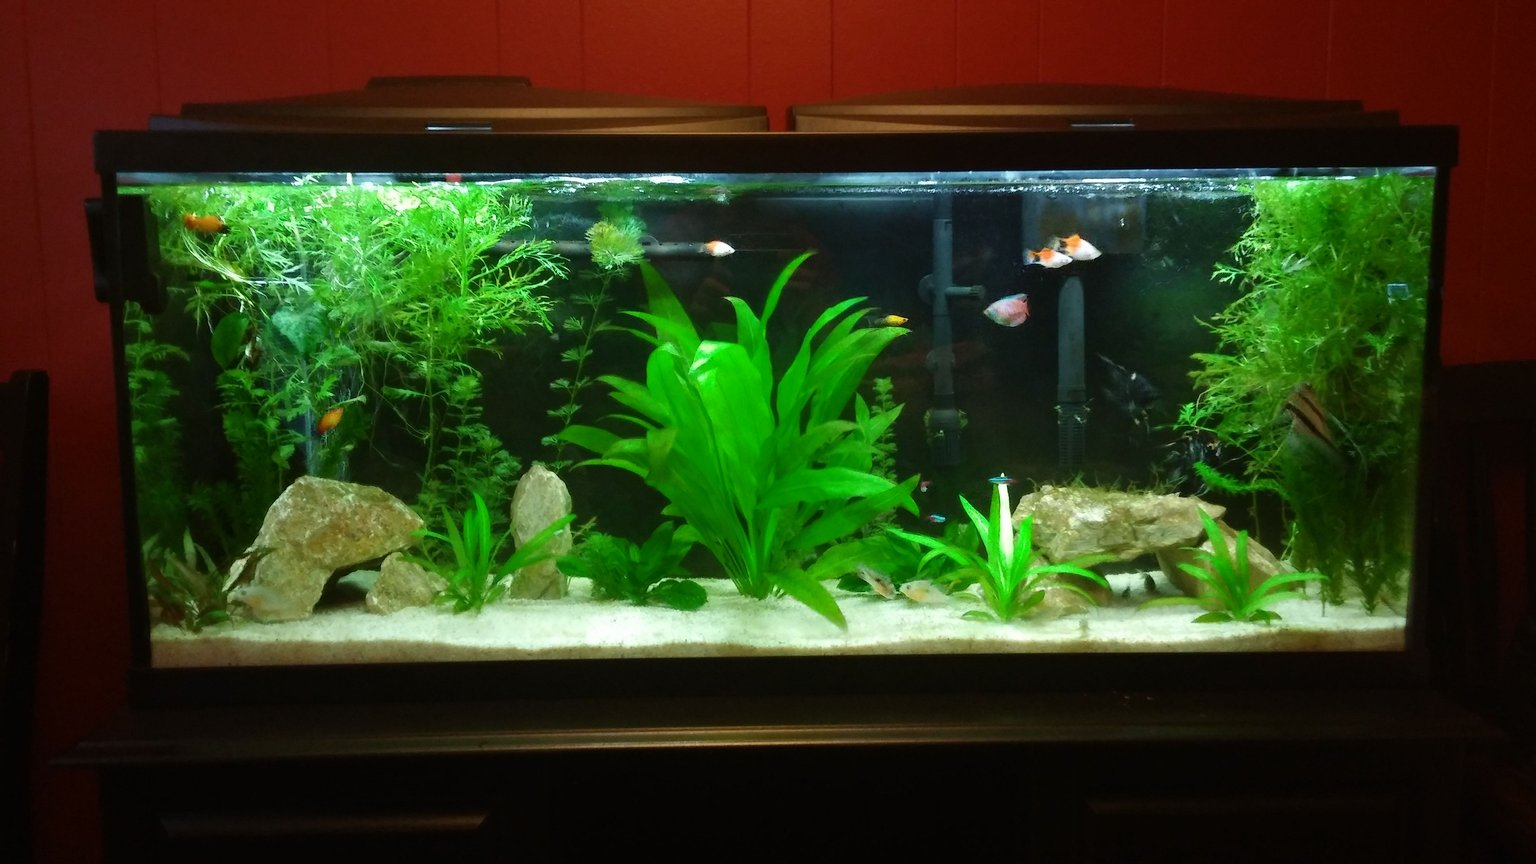 55 gallons freshwater fish tank (mostly fish and non-living decorations) - Our first aquarium